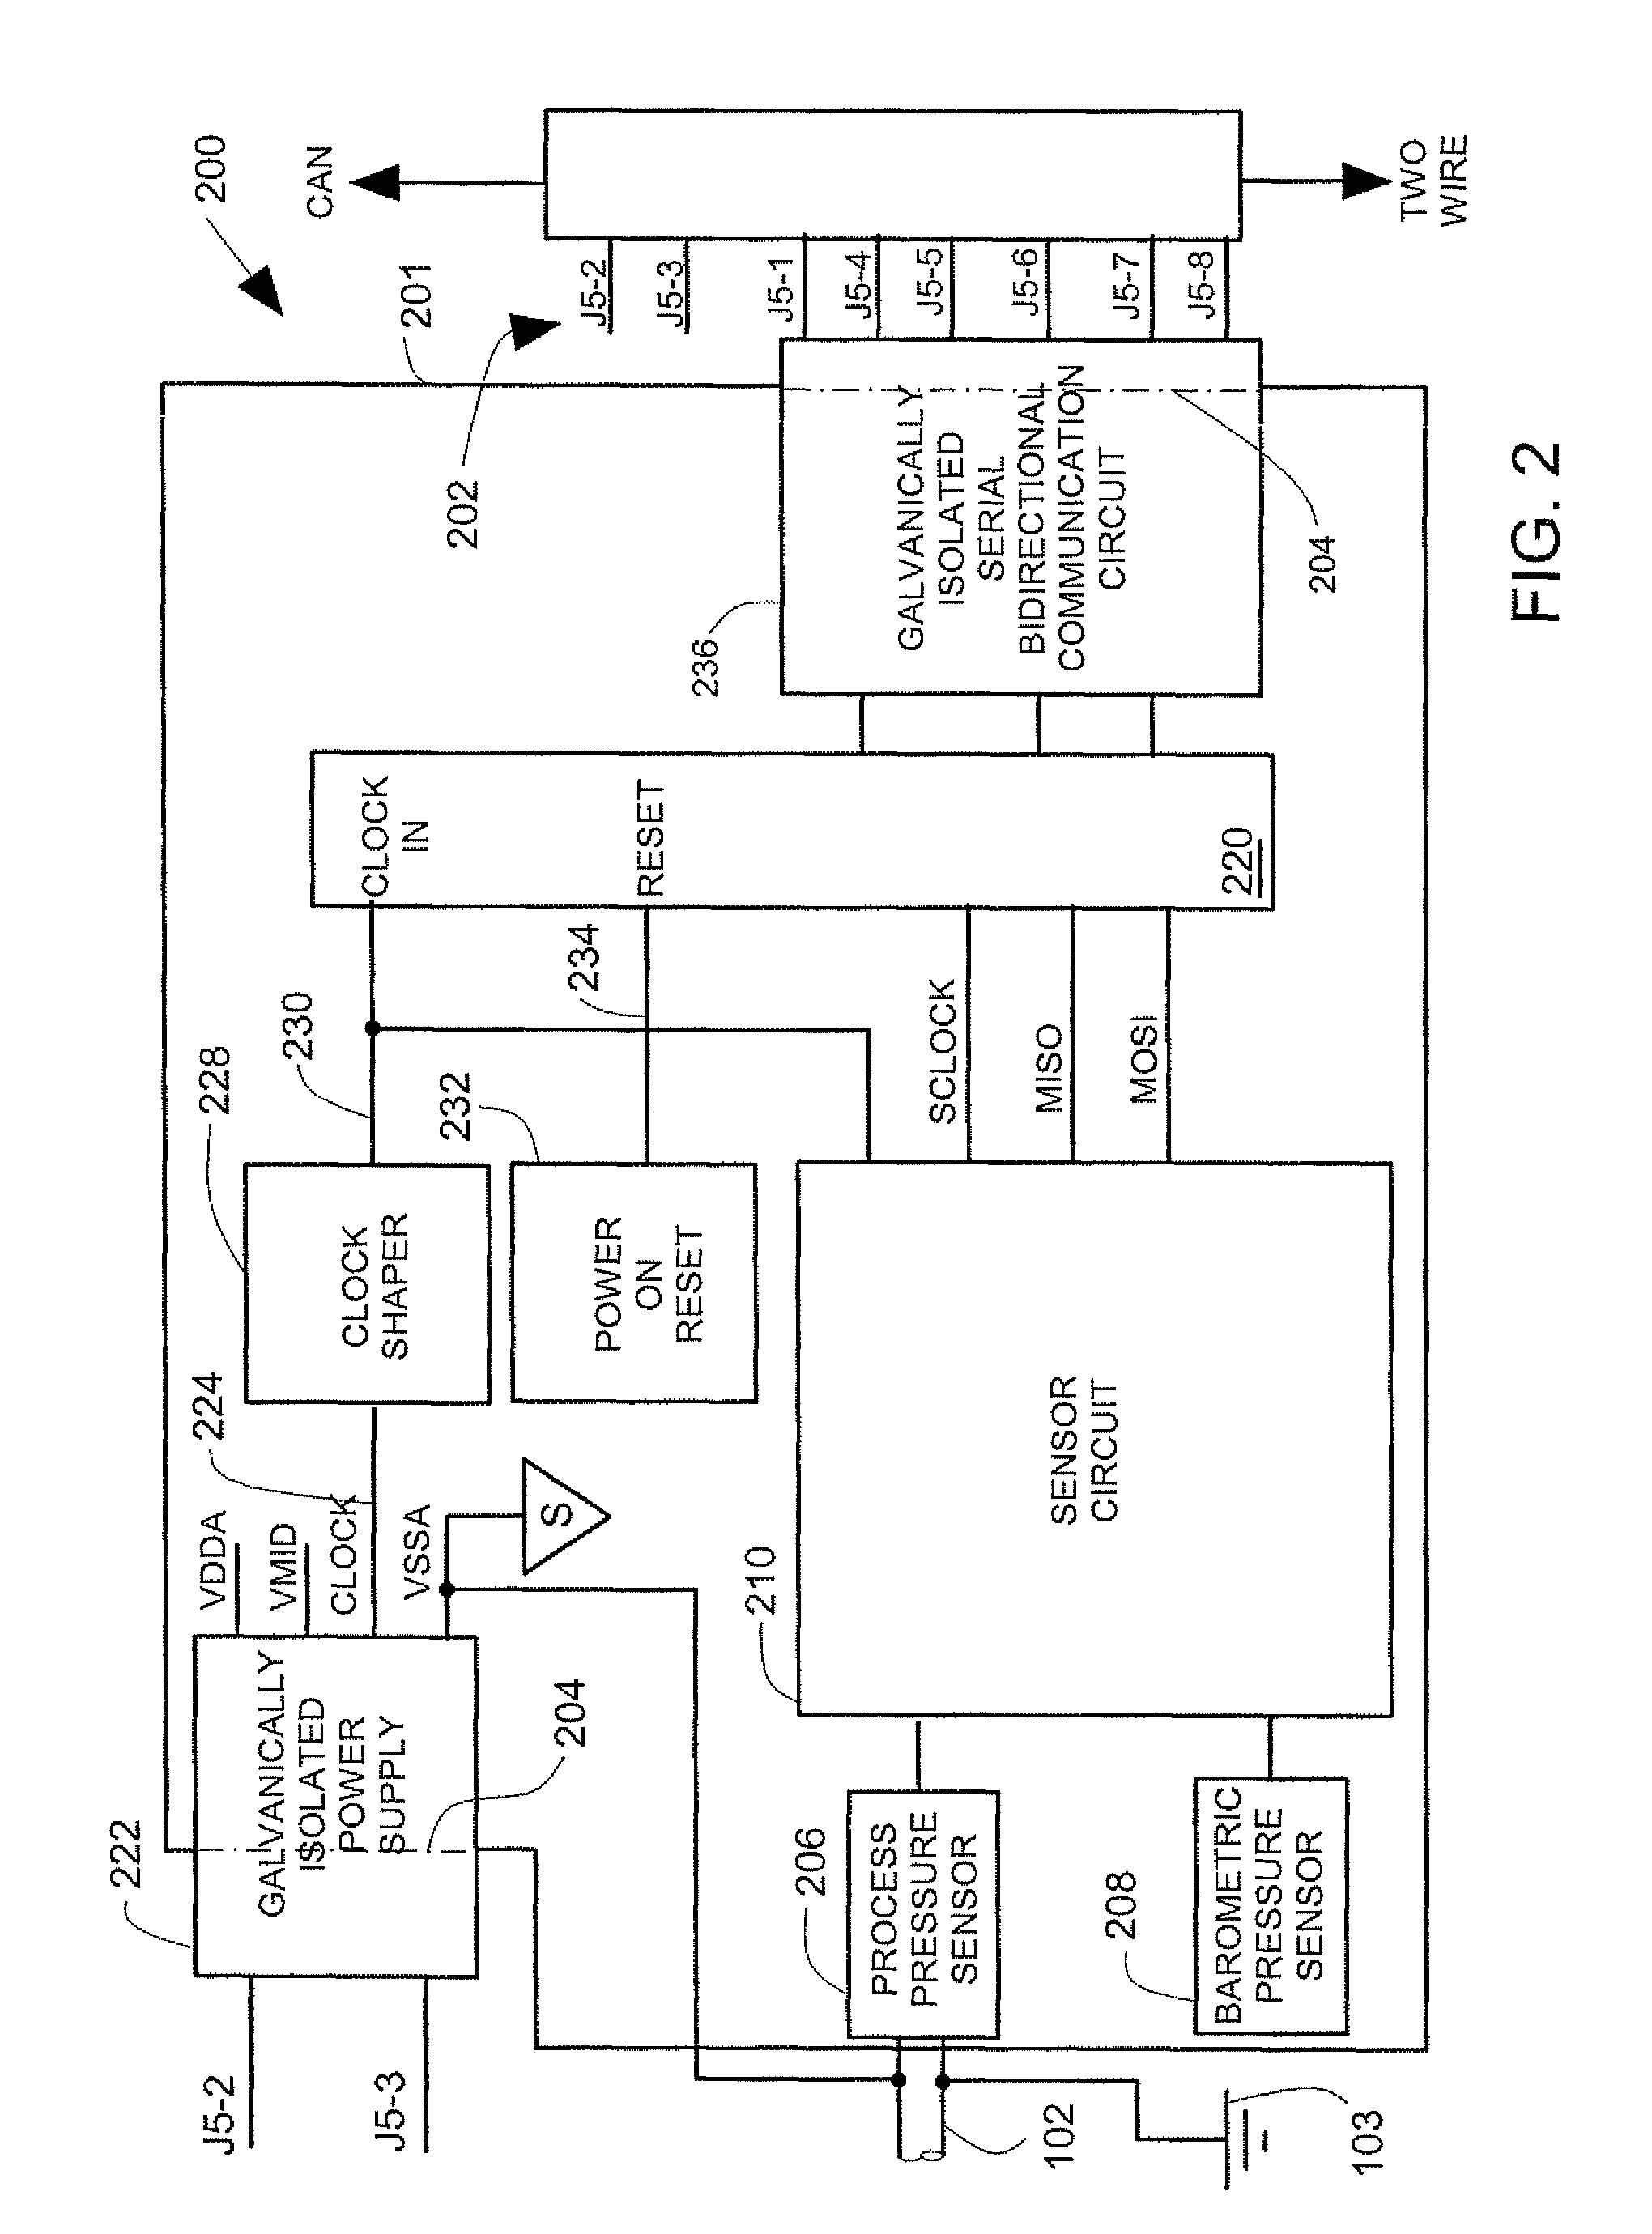 Wika Pressure Transmitter Wiring Diagram Real Fuel 40 Tank Connection